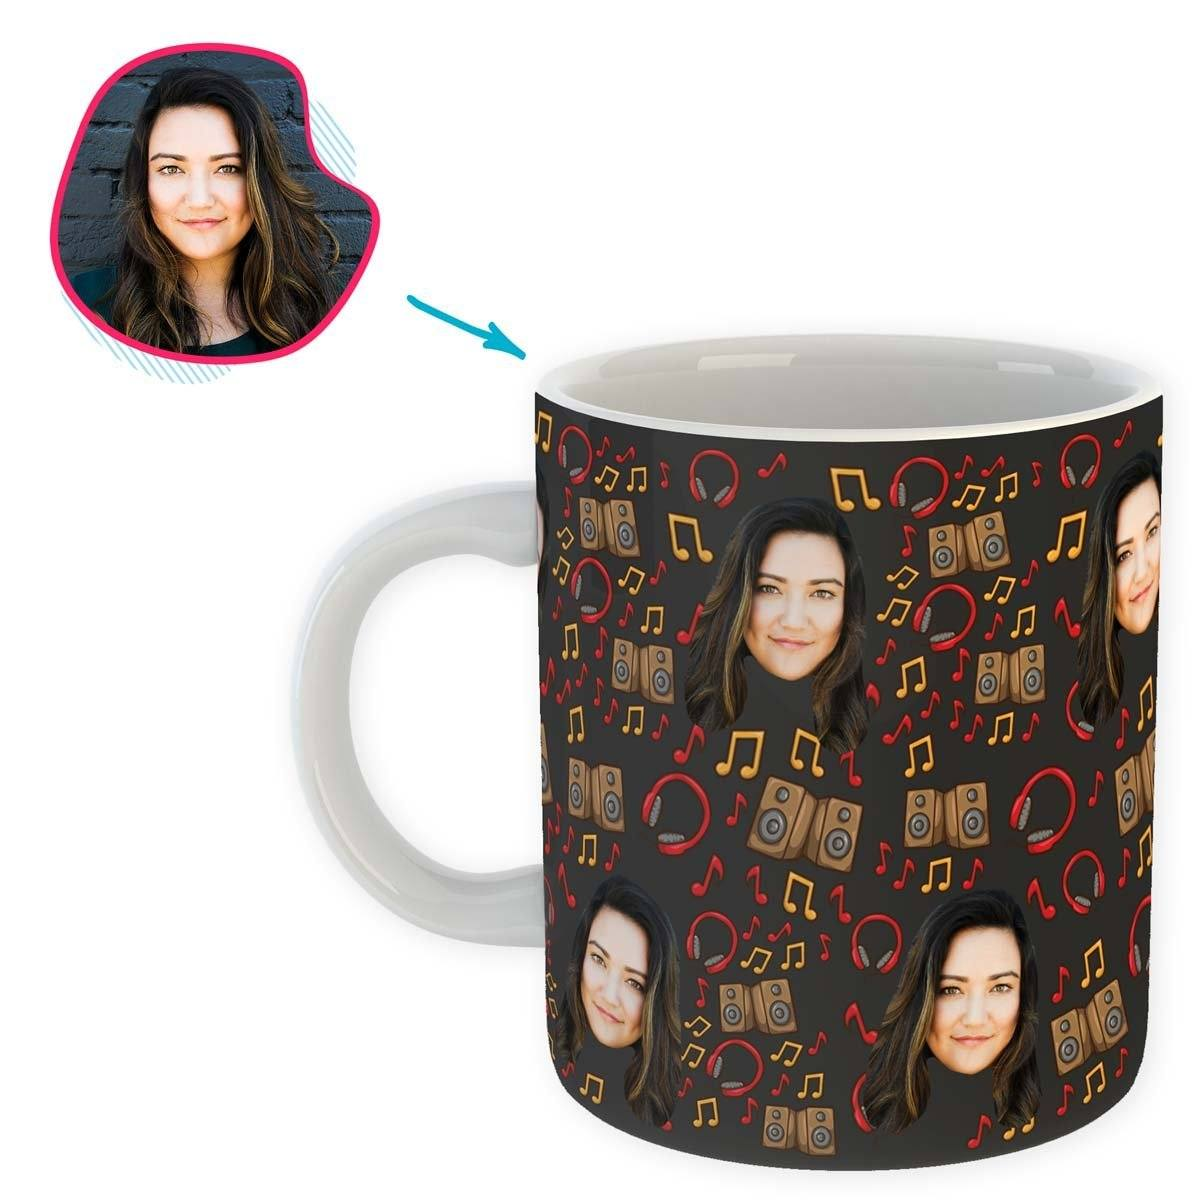 dark Music mug personalized with photo of face printed on it